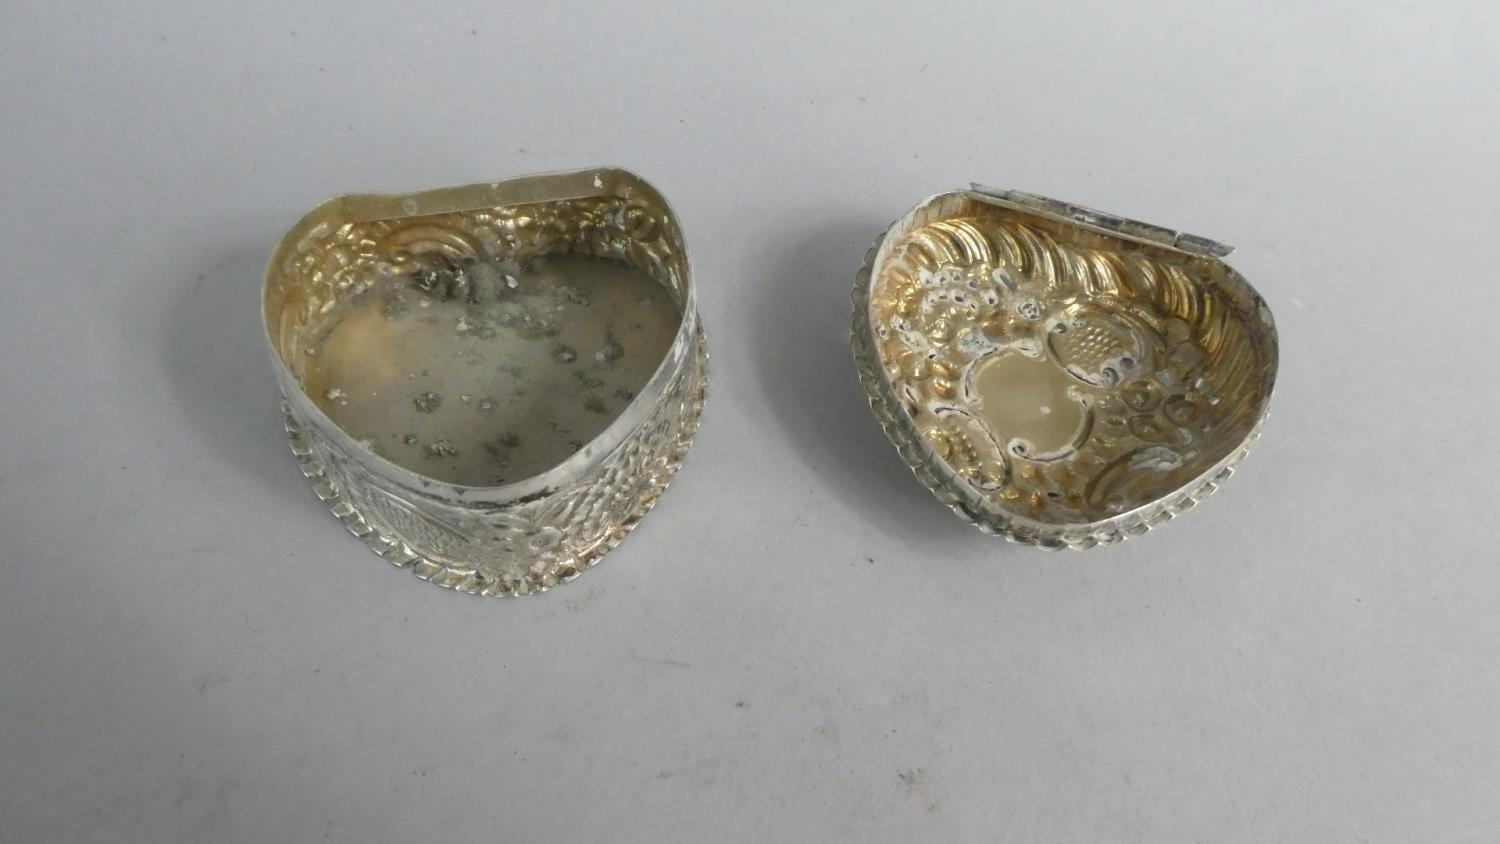 Two Heart Shaped Silver Boxes and a Silver Heart Shaped Pin Dish - Image 7 of 10